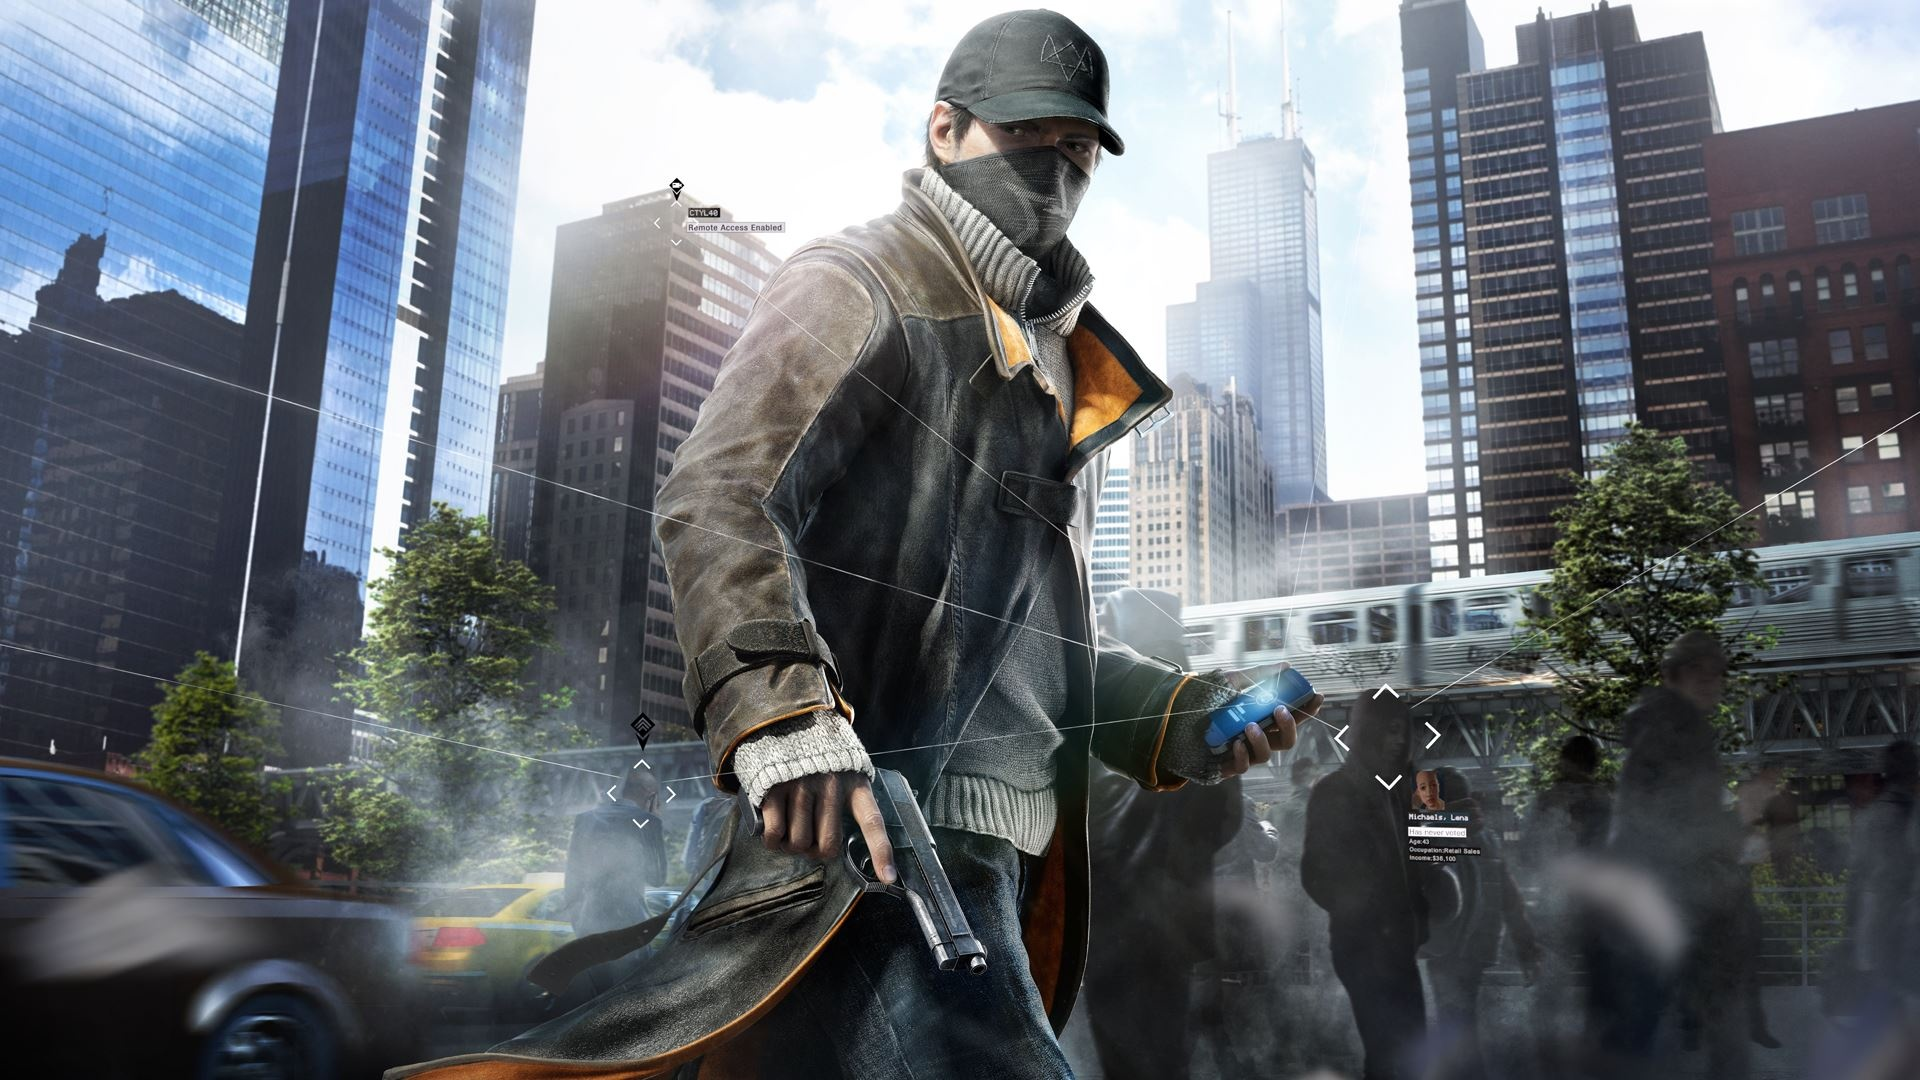 [عکس: watch_dogs_aiden_pearce-1920x1080.jpg]